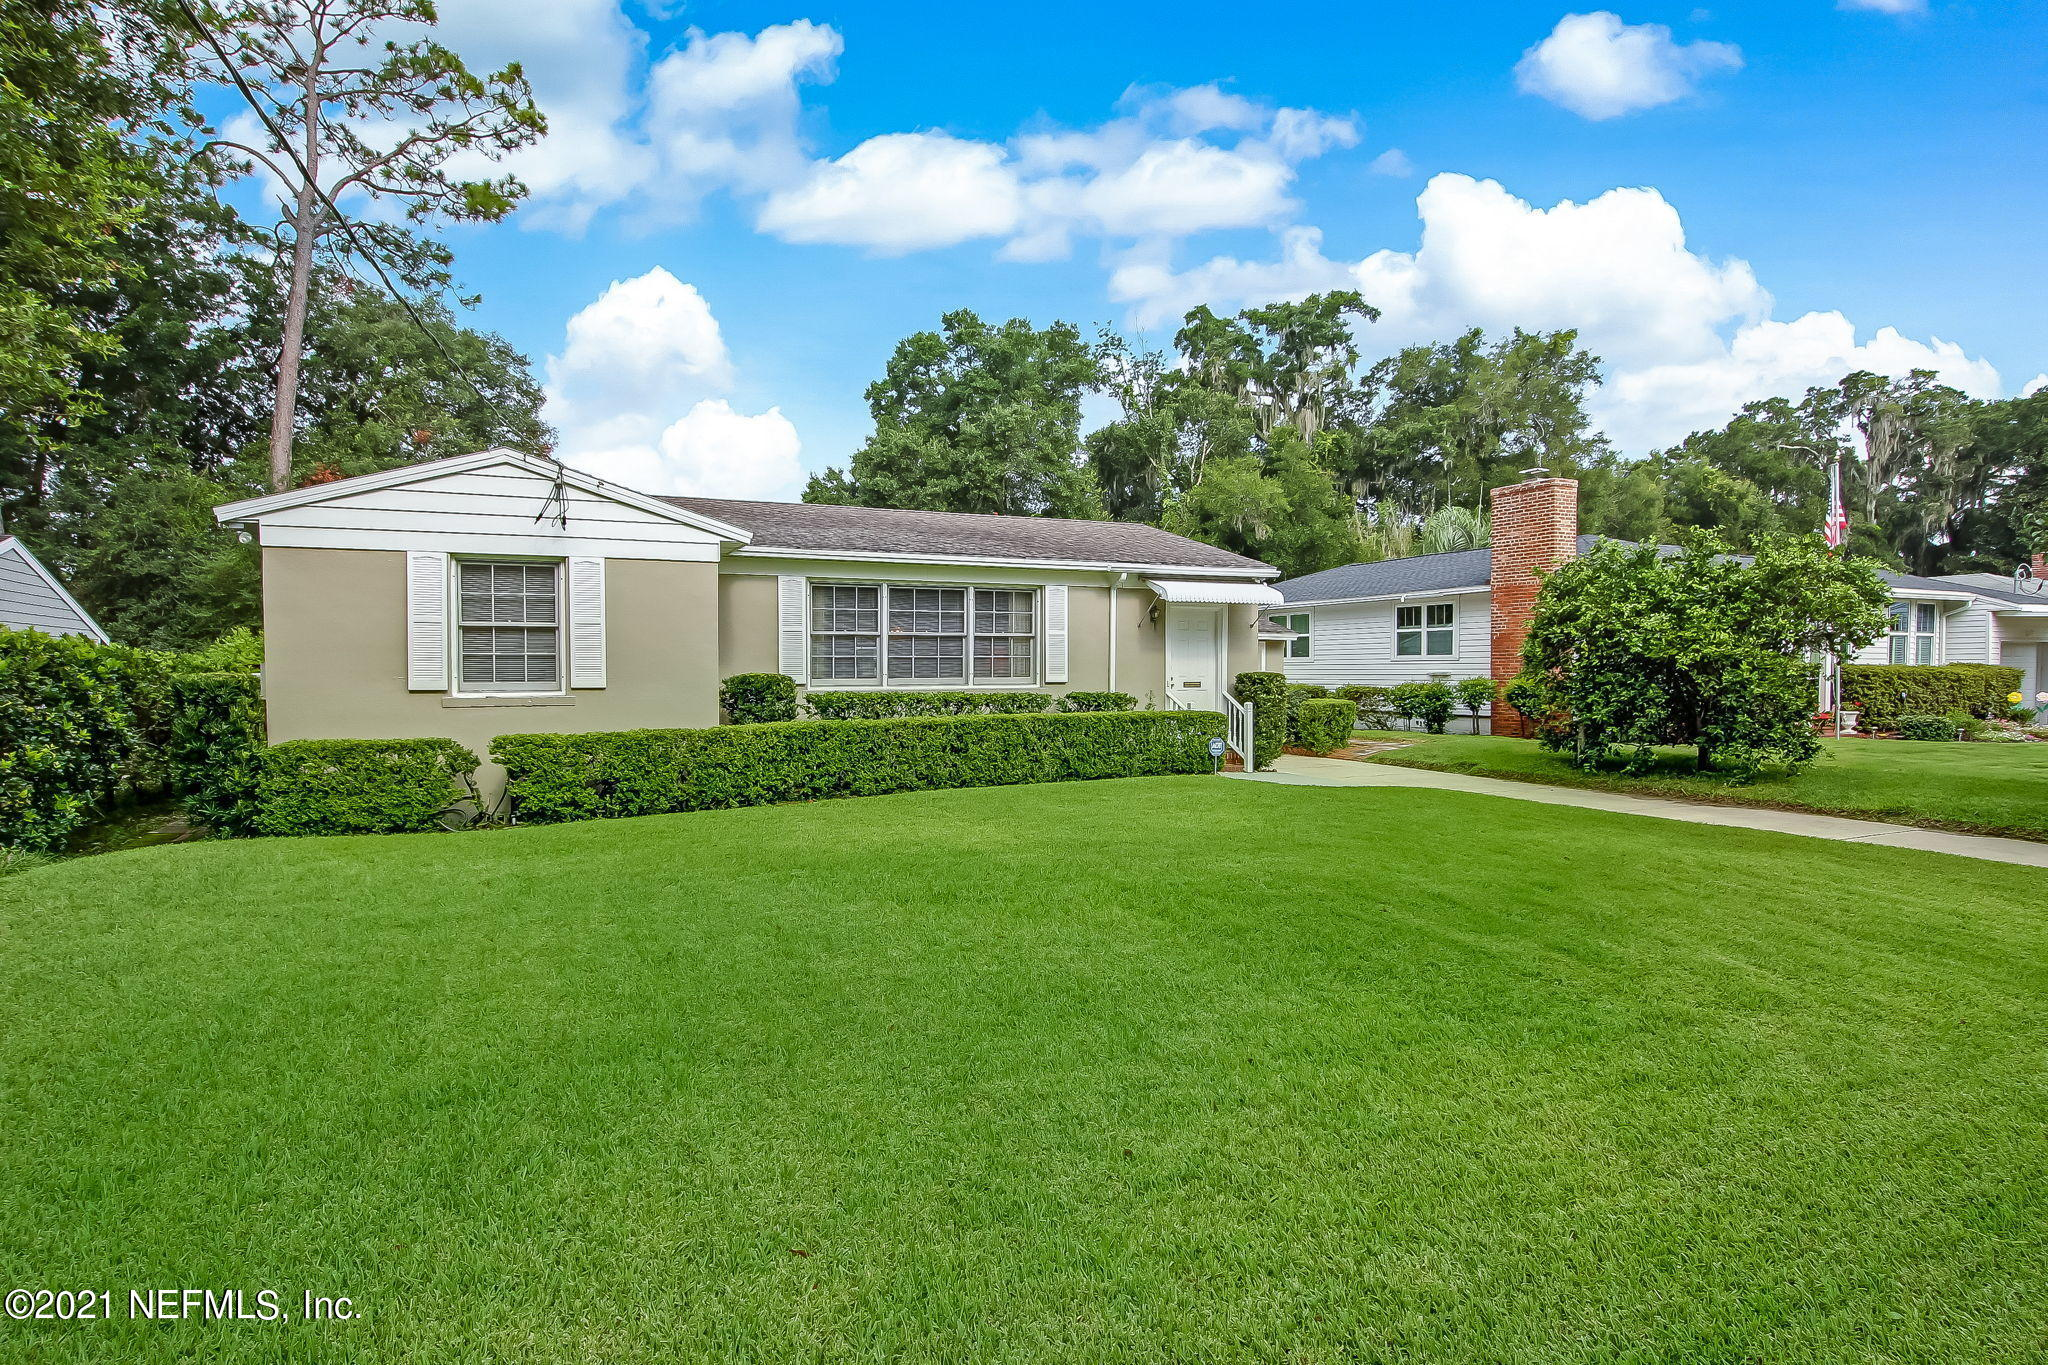 Exterior Front with lush green grass wit